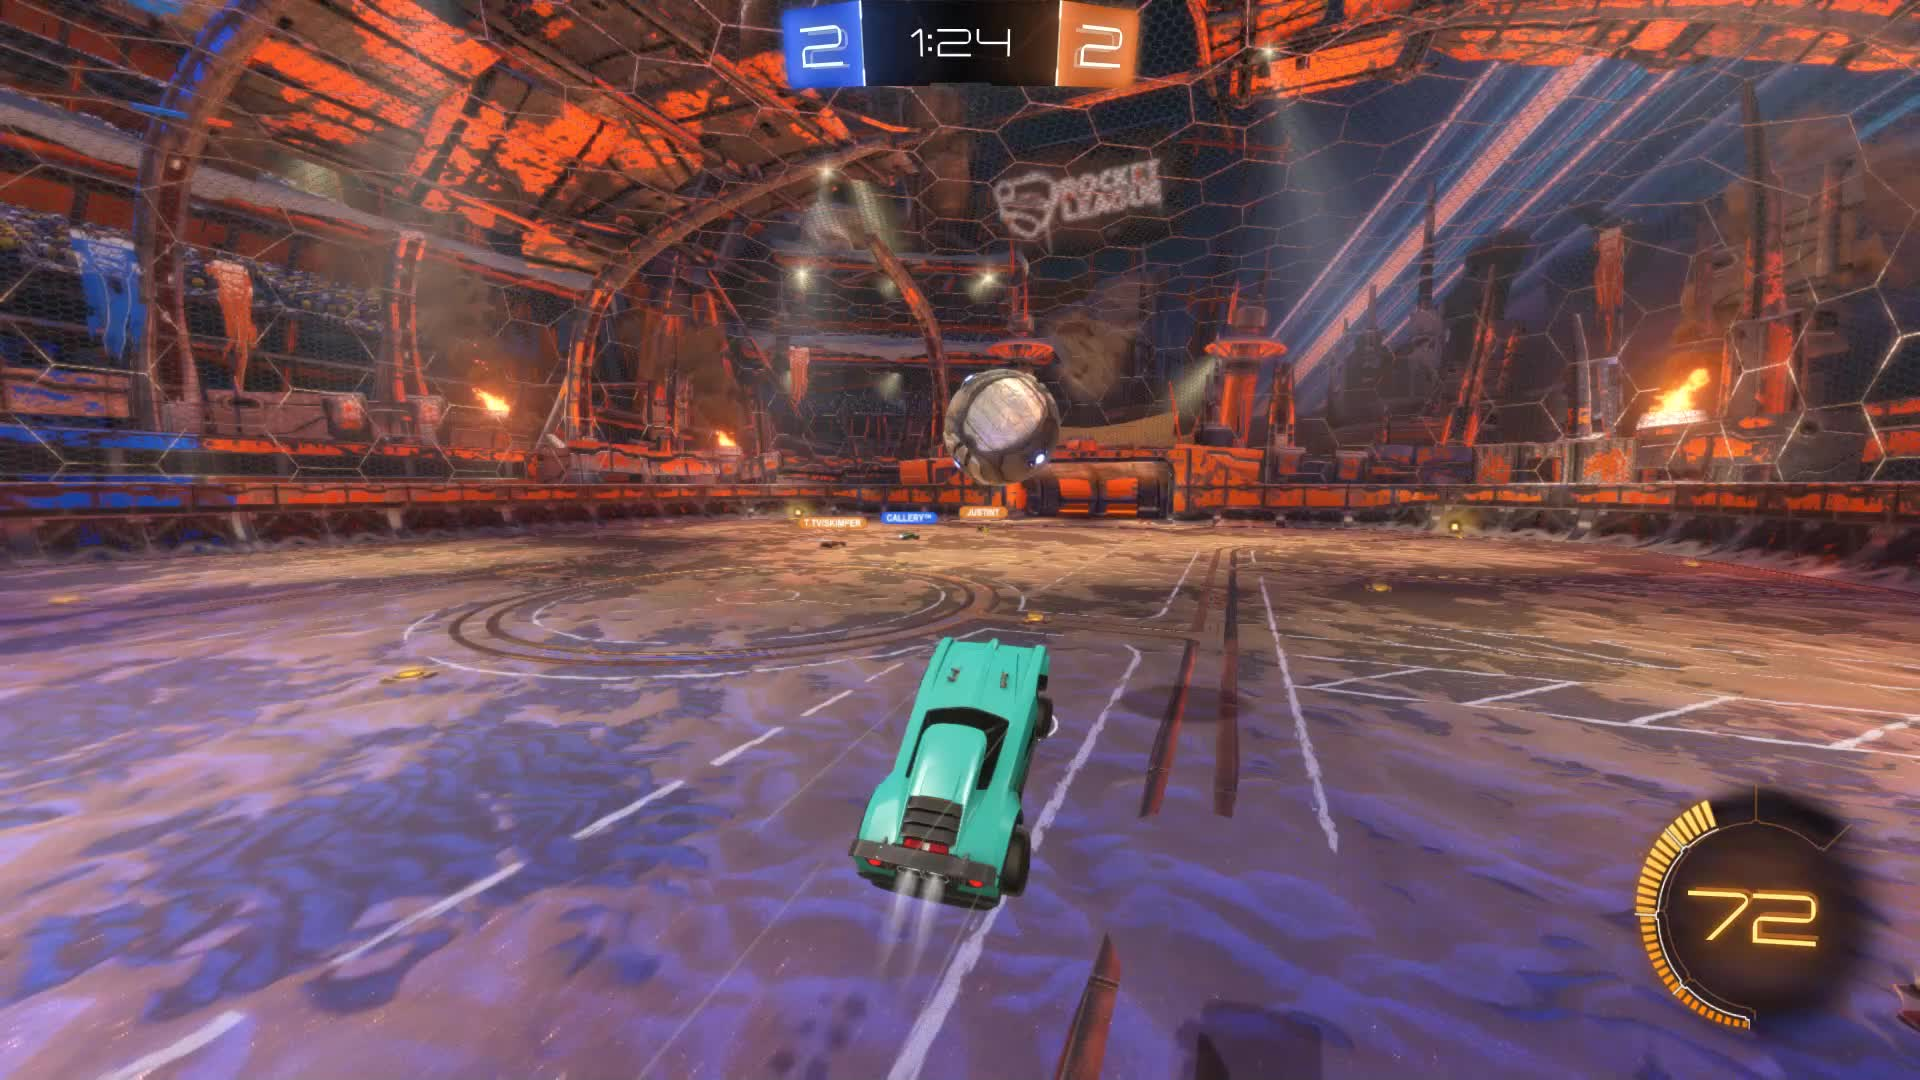 Gif Your Game, GifYourGame, Goal, Rocket League, RocketLeague, Wisconsin, ⏱️ Goal 5: Wisconsin GIFs